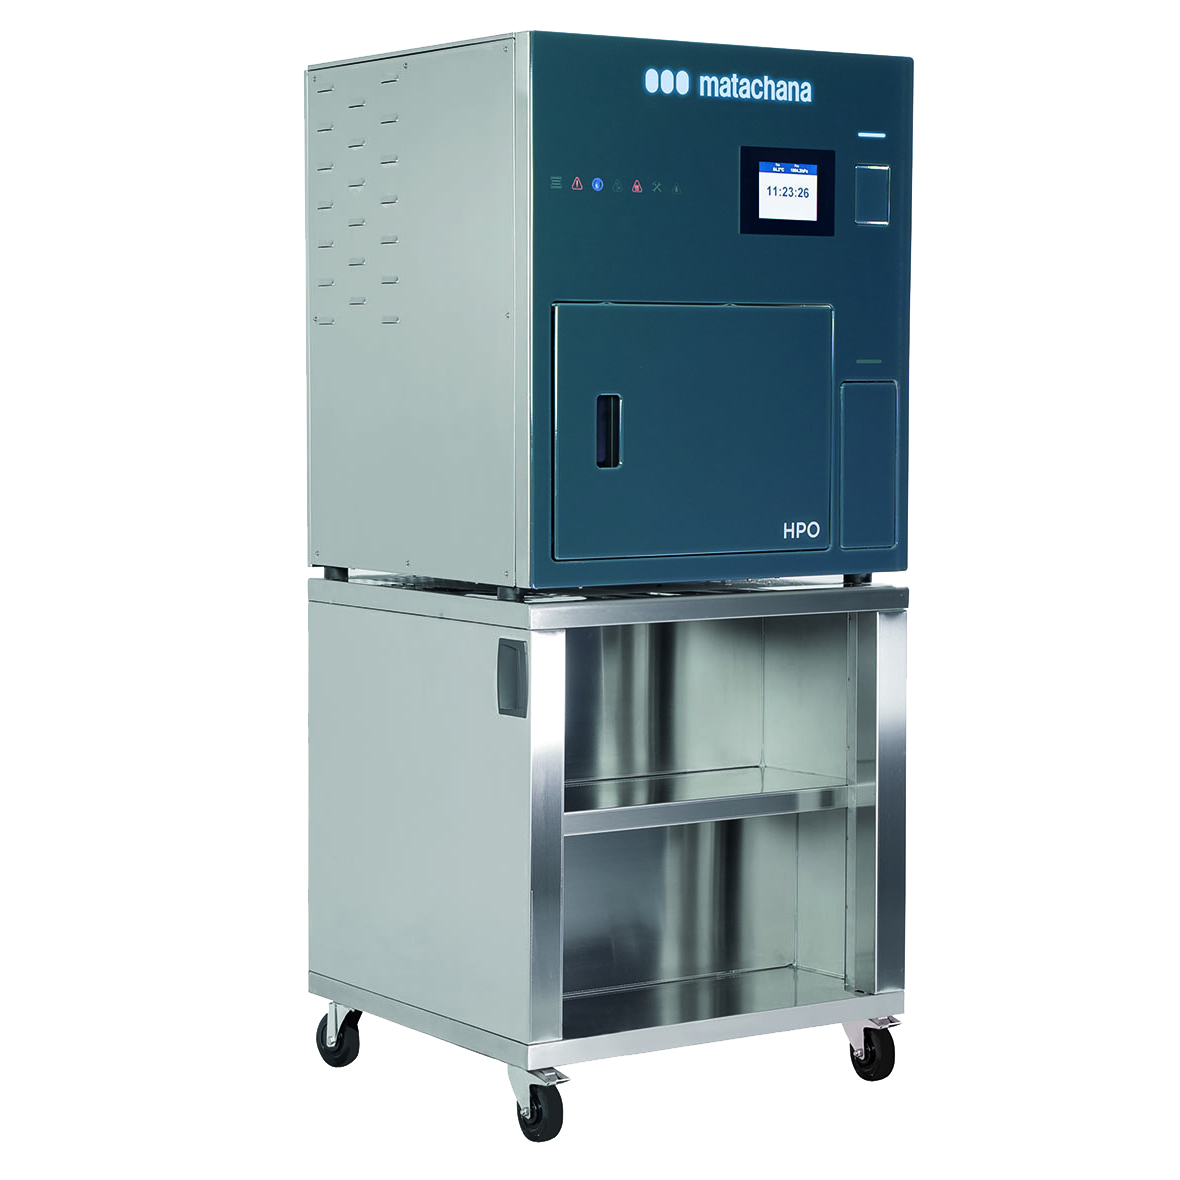 50HPO Low Temp Sterilizer